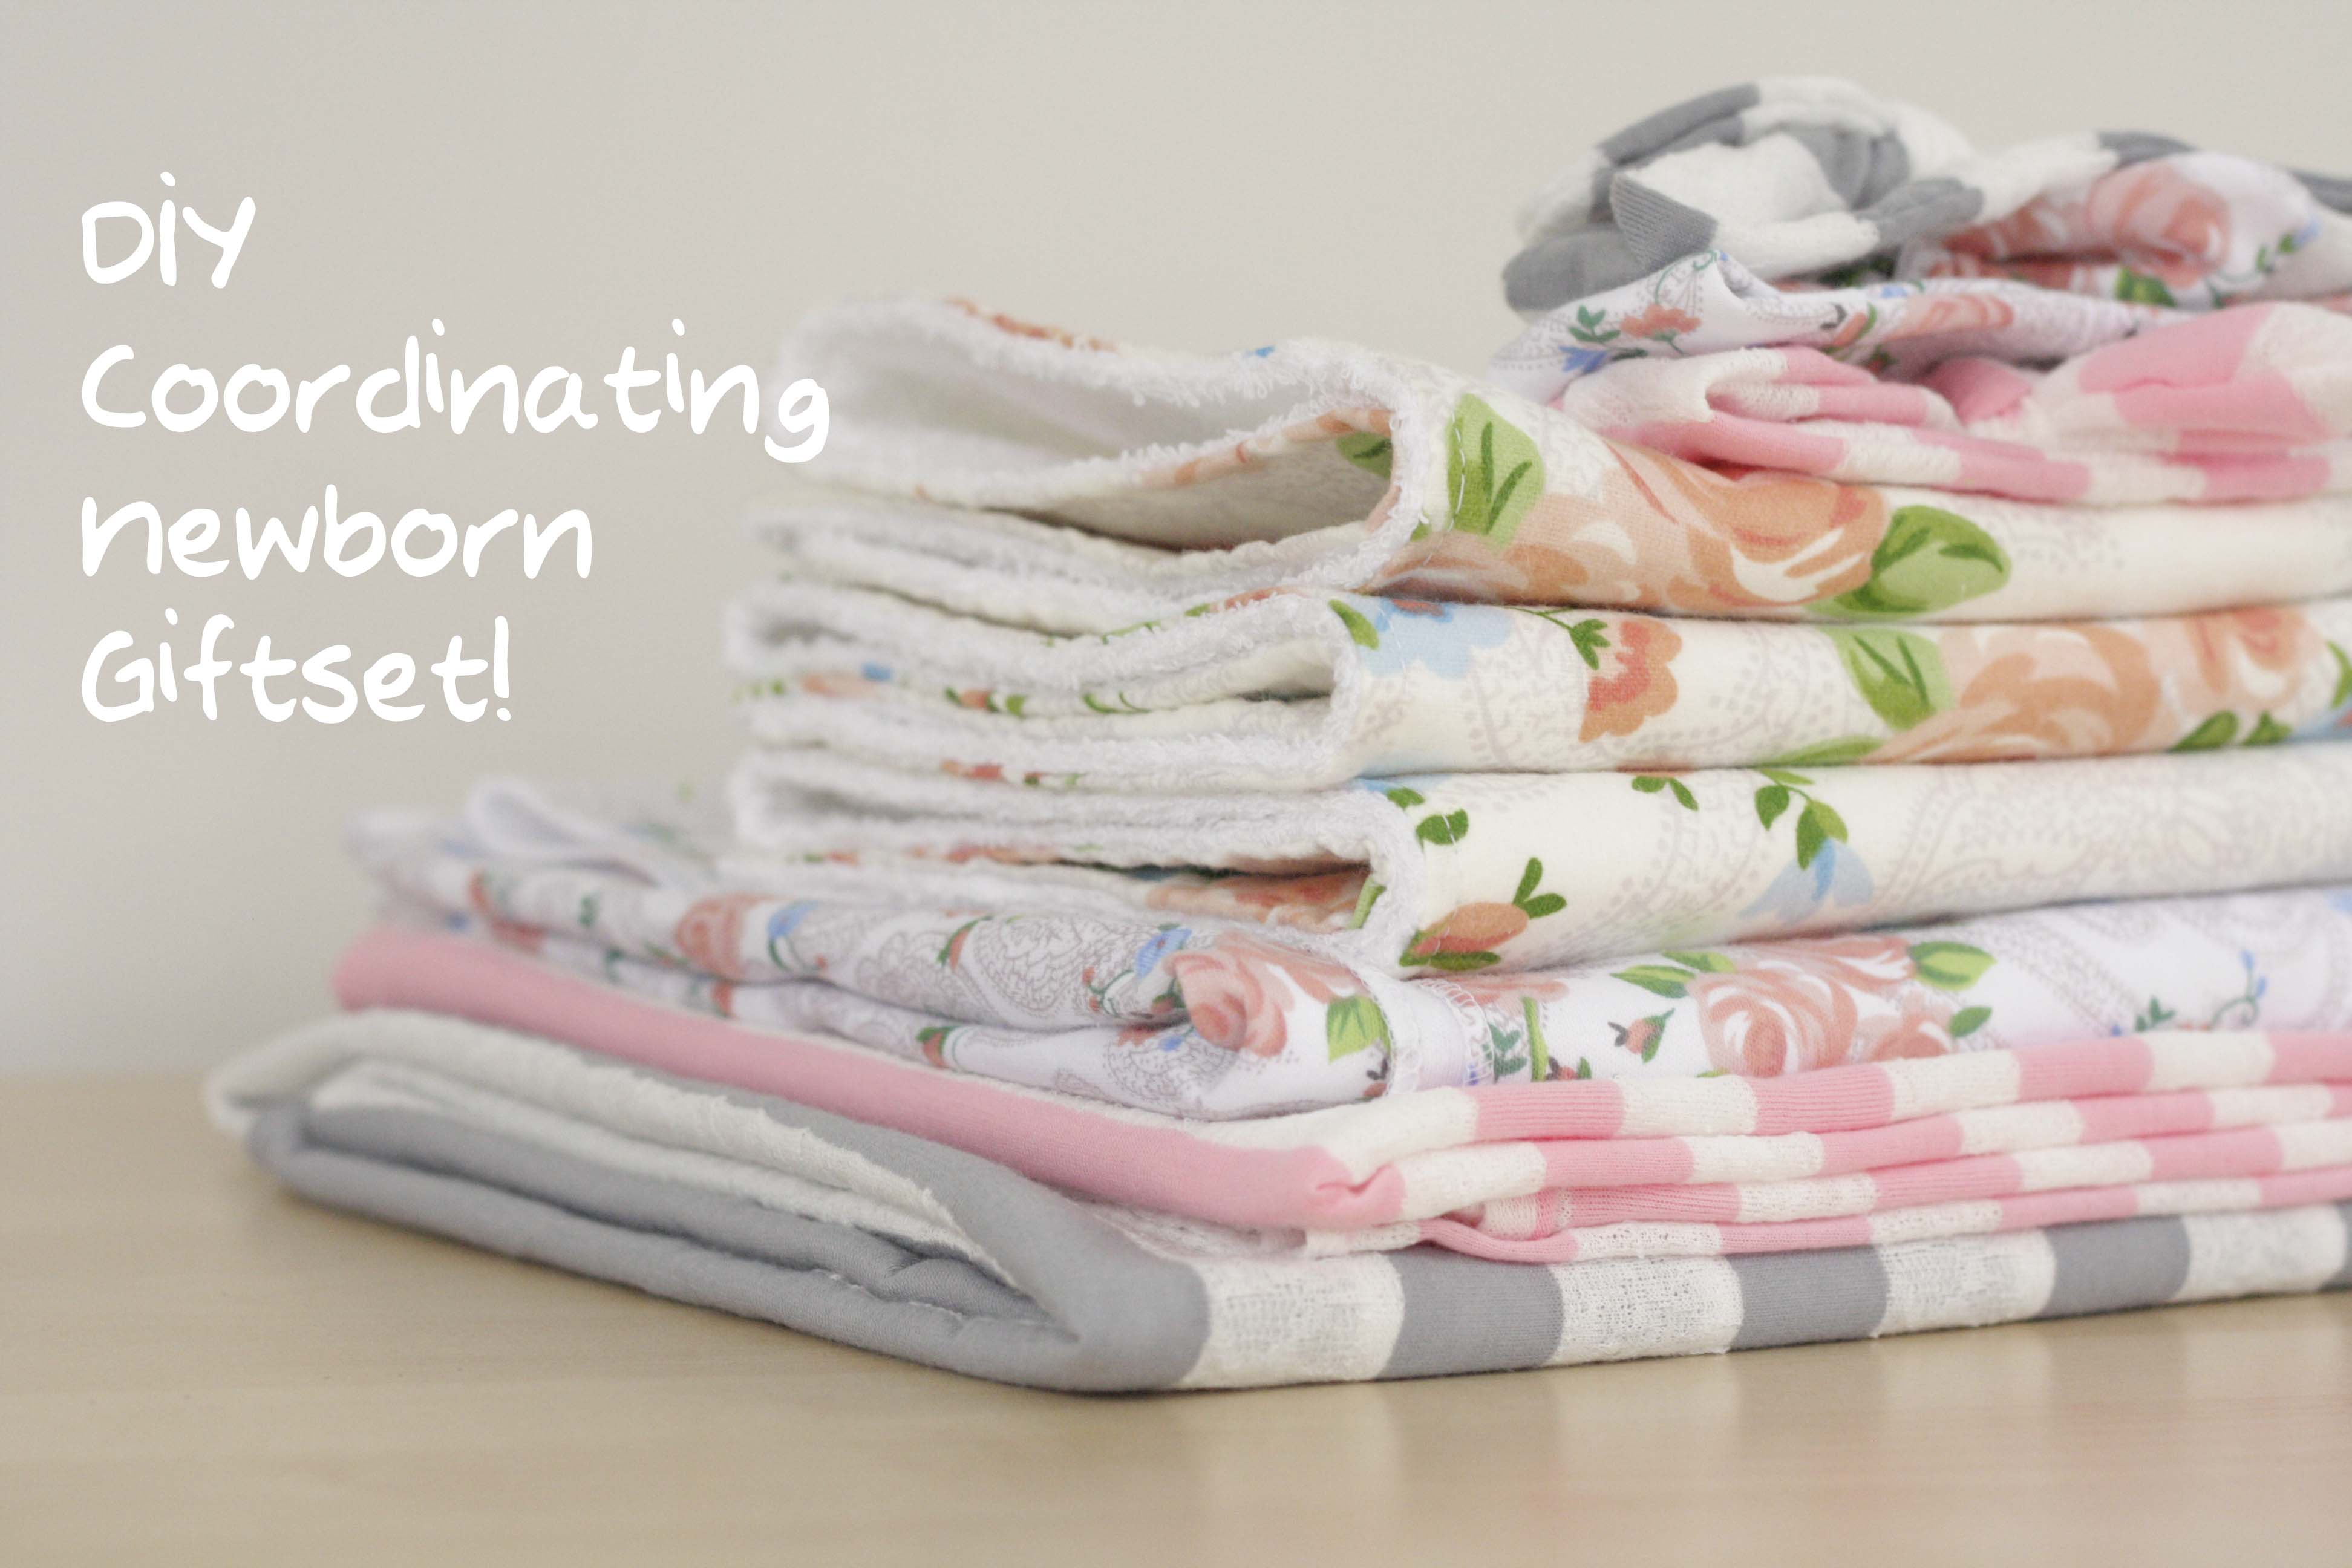 Diy Coordinating Newborn Gift Set The Sweeter Side Of Mommyhood